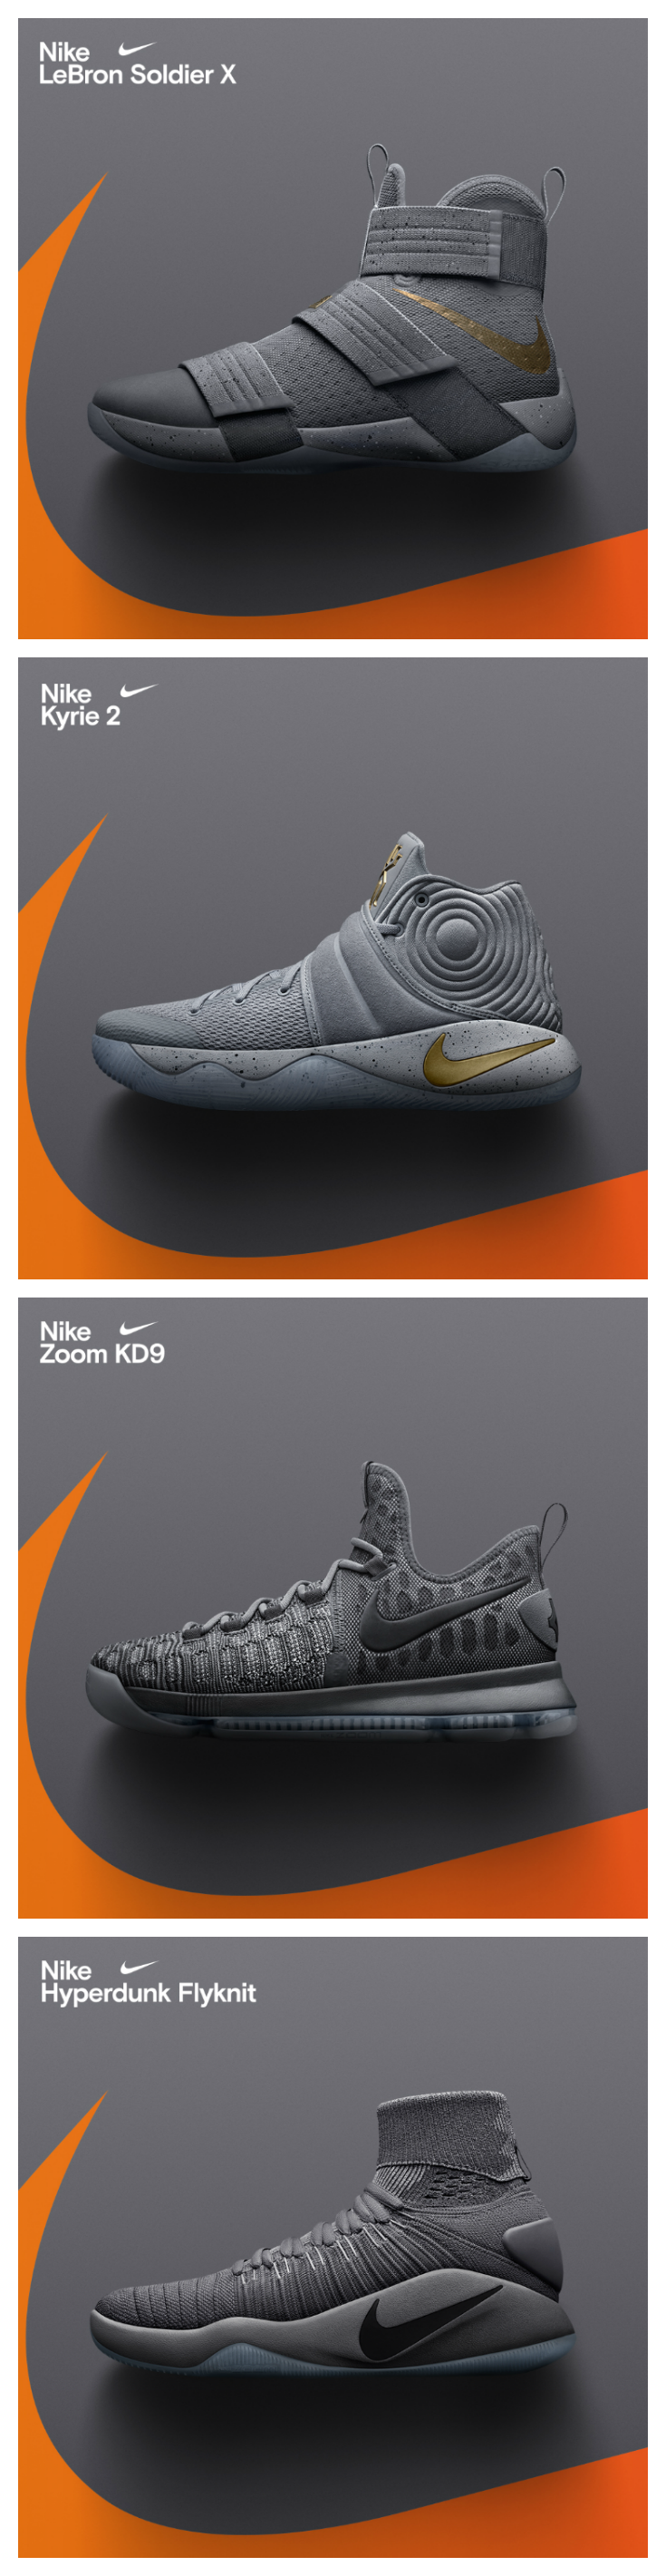 reputable site 9c485 7fa1a Nike just dropped grey-on-grey colorways of the KD 9, Kyrie 2, Soldier 10,  and Hyperdunk 2016. Available now.